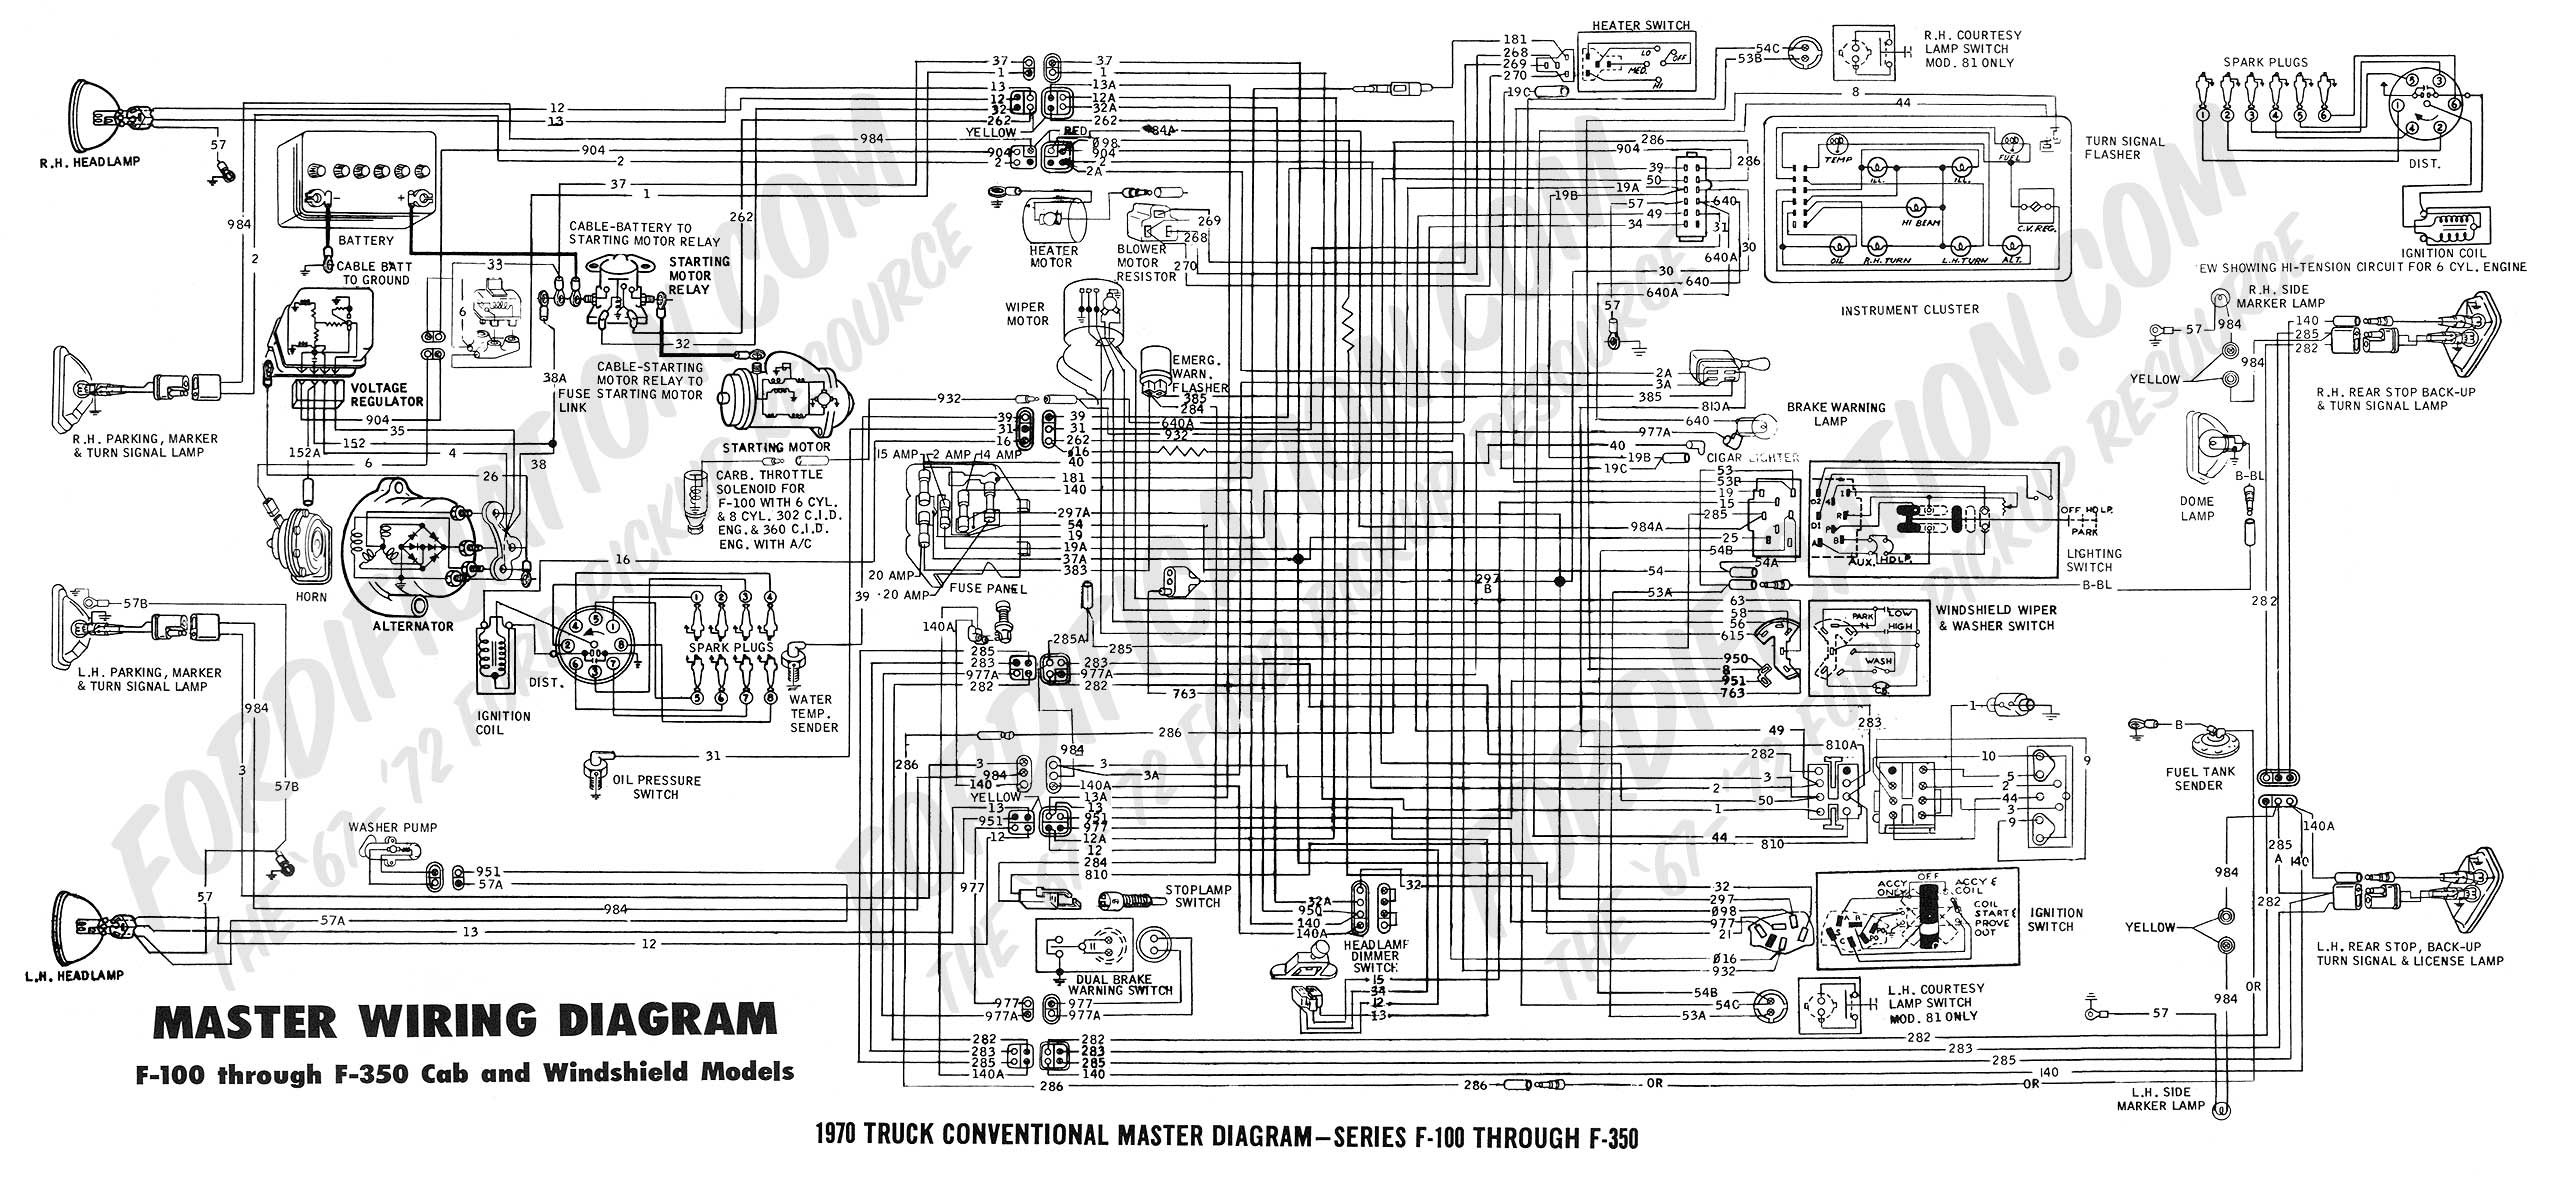 [ZHKZ_3066]  Ford Truck Technical Drawings and Schematics - Section H - Wiring Diagrams | 1986 Ford F 150 Headlight Wiring |  | FORDification.com